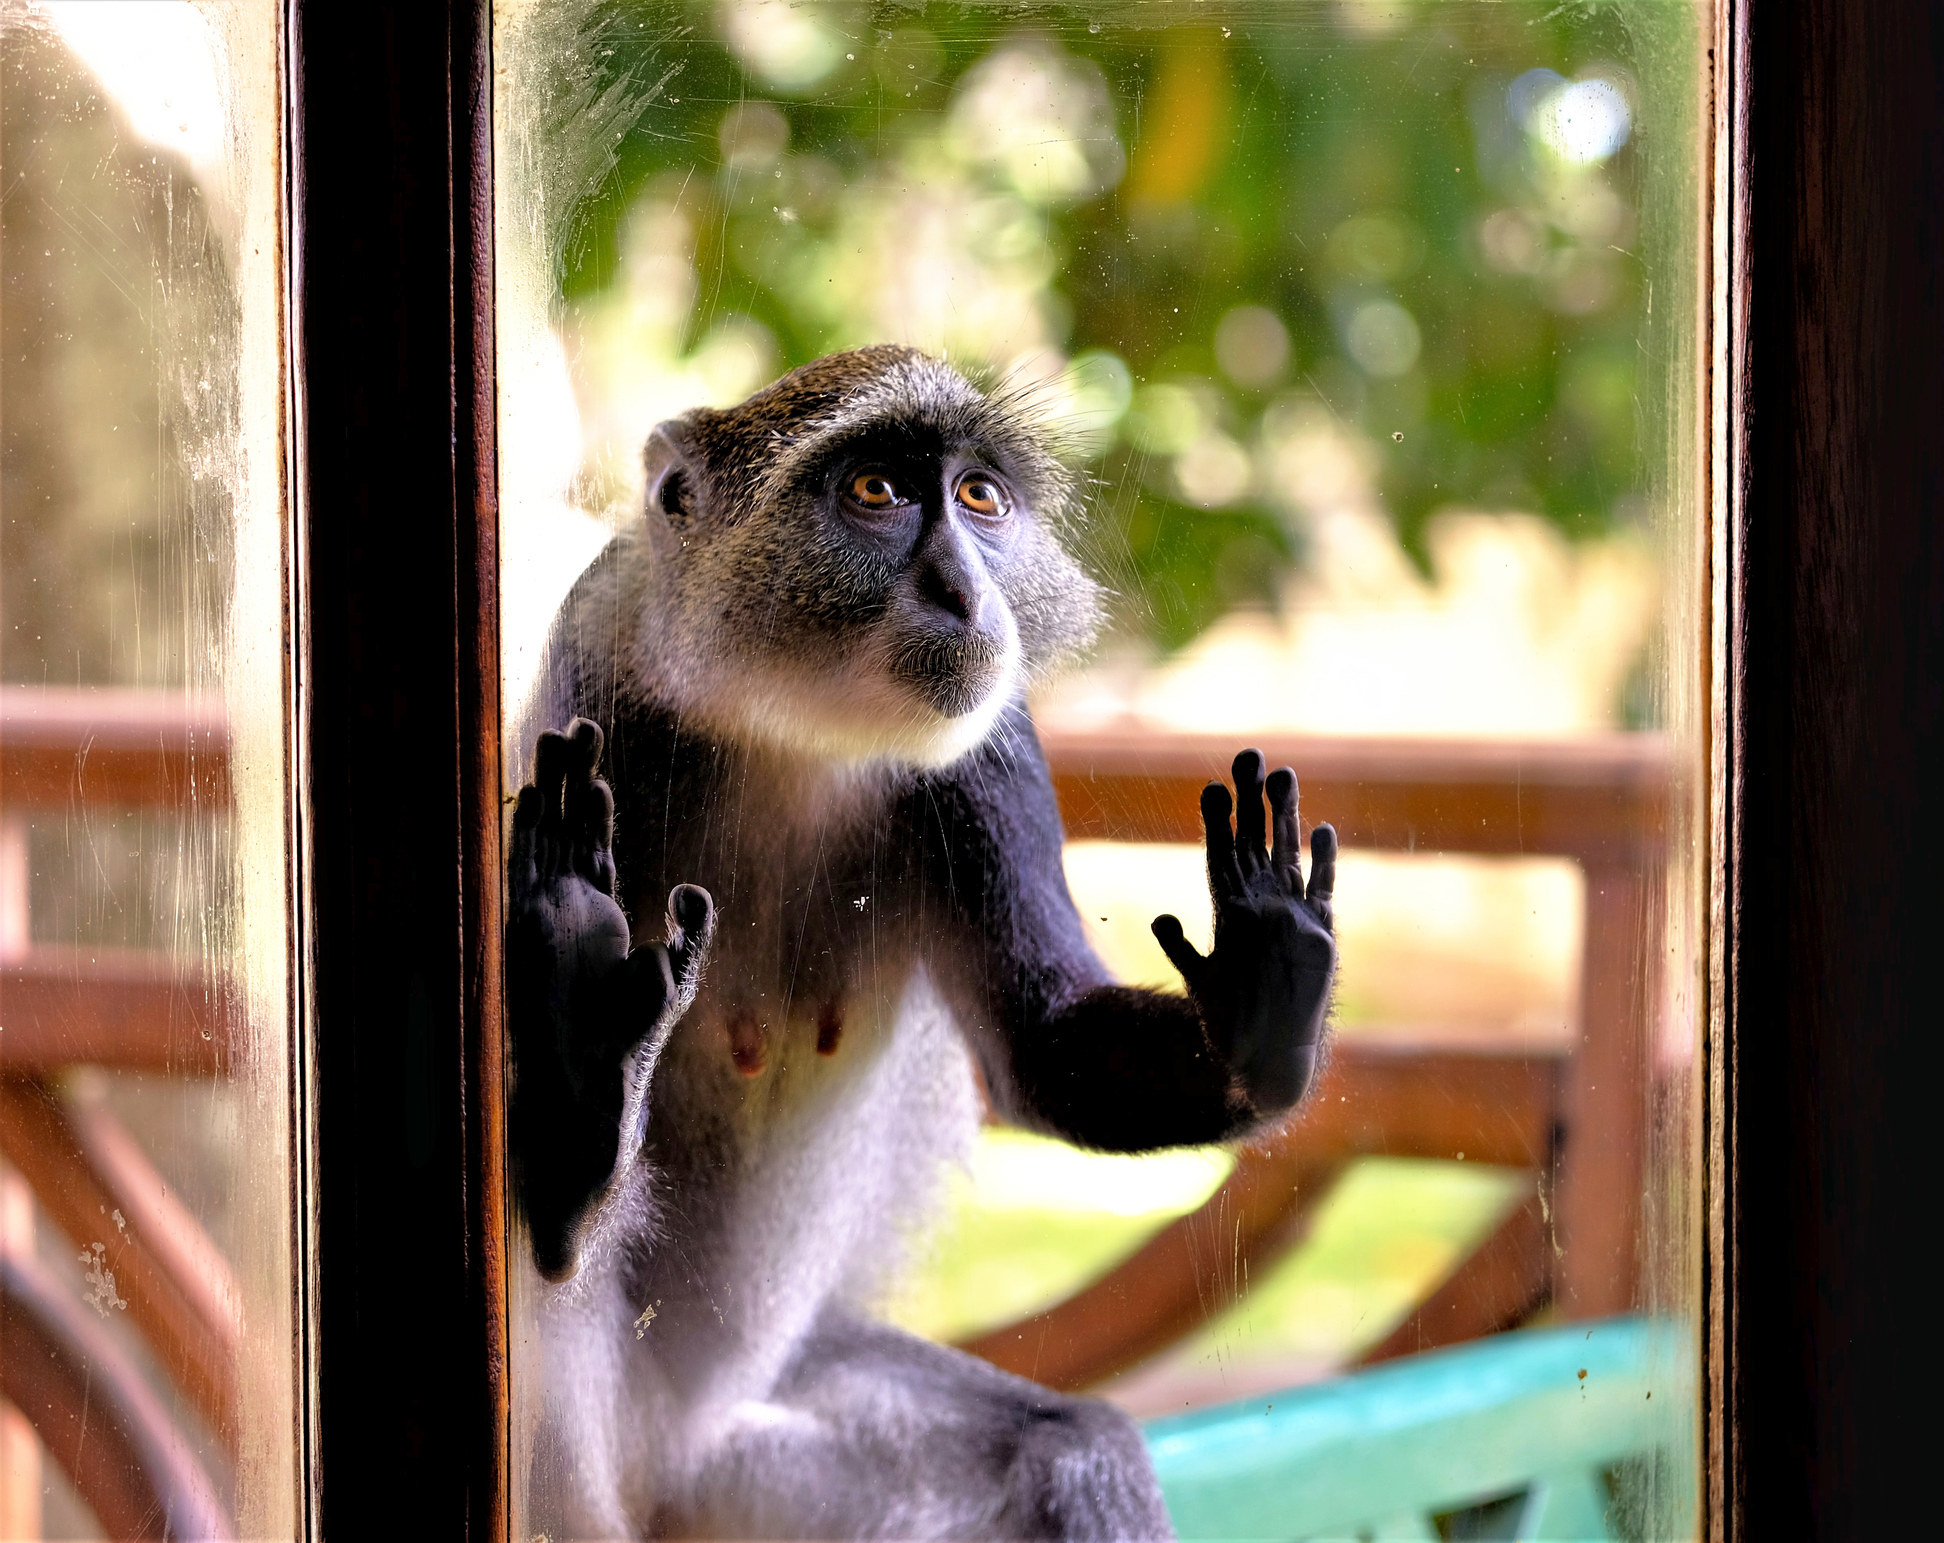 Curious monkey looking in a window